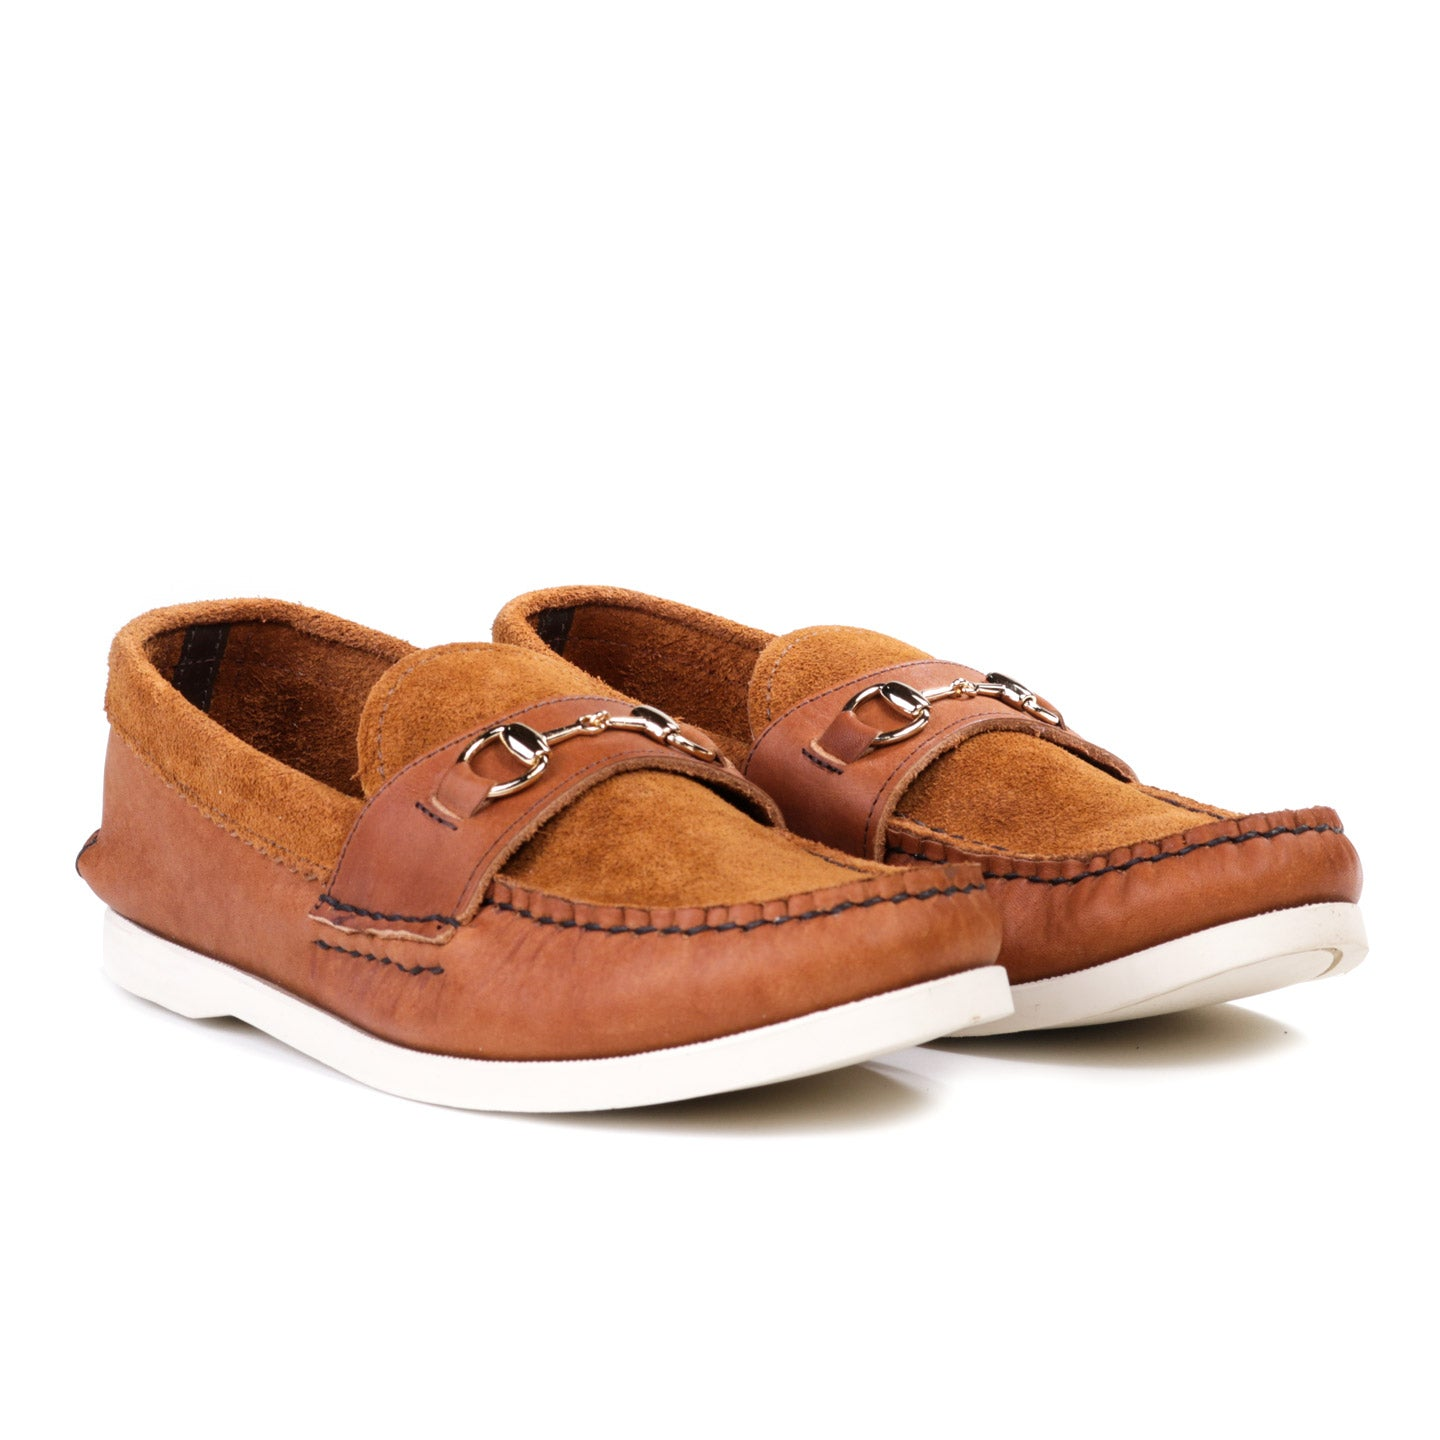 YUKETEN TODAY BIT LOAFER 2T ORANGE